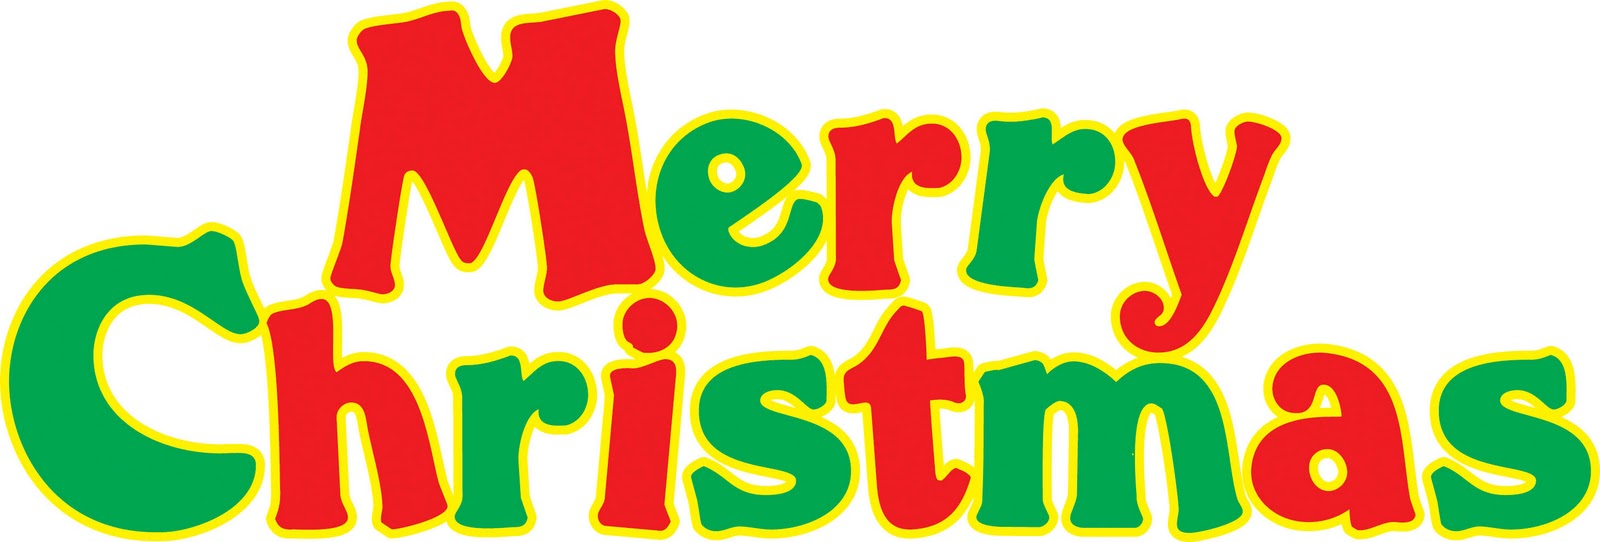 1600x542 Merry Christmas Banner Clipart Free Images